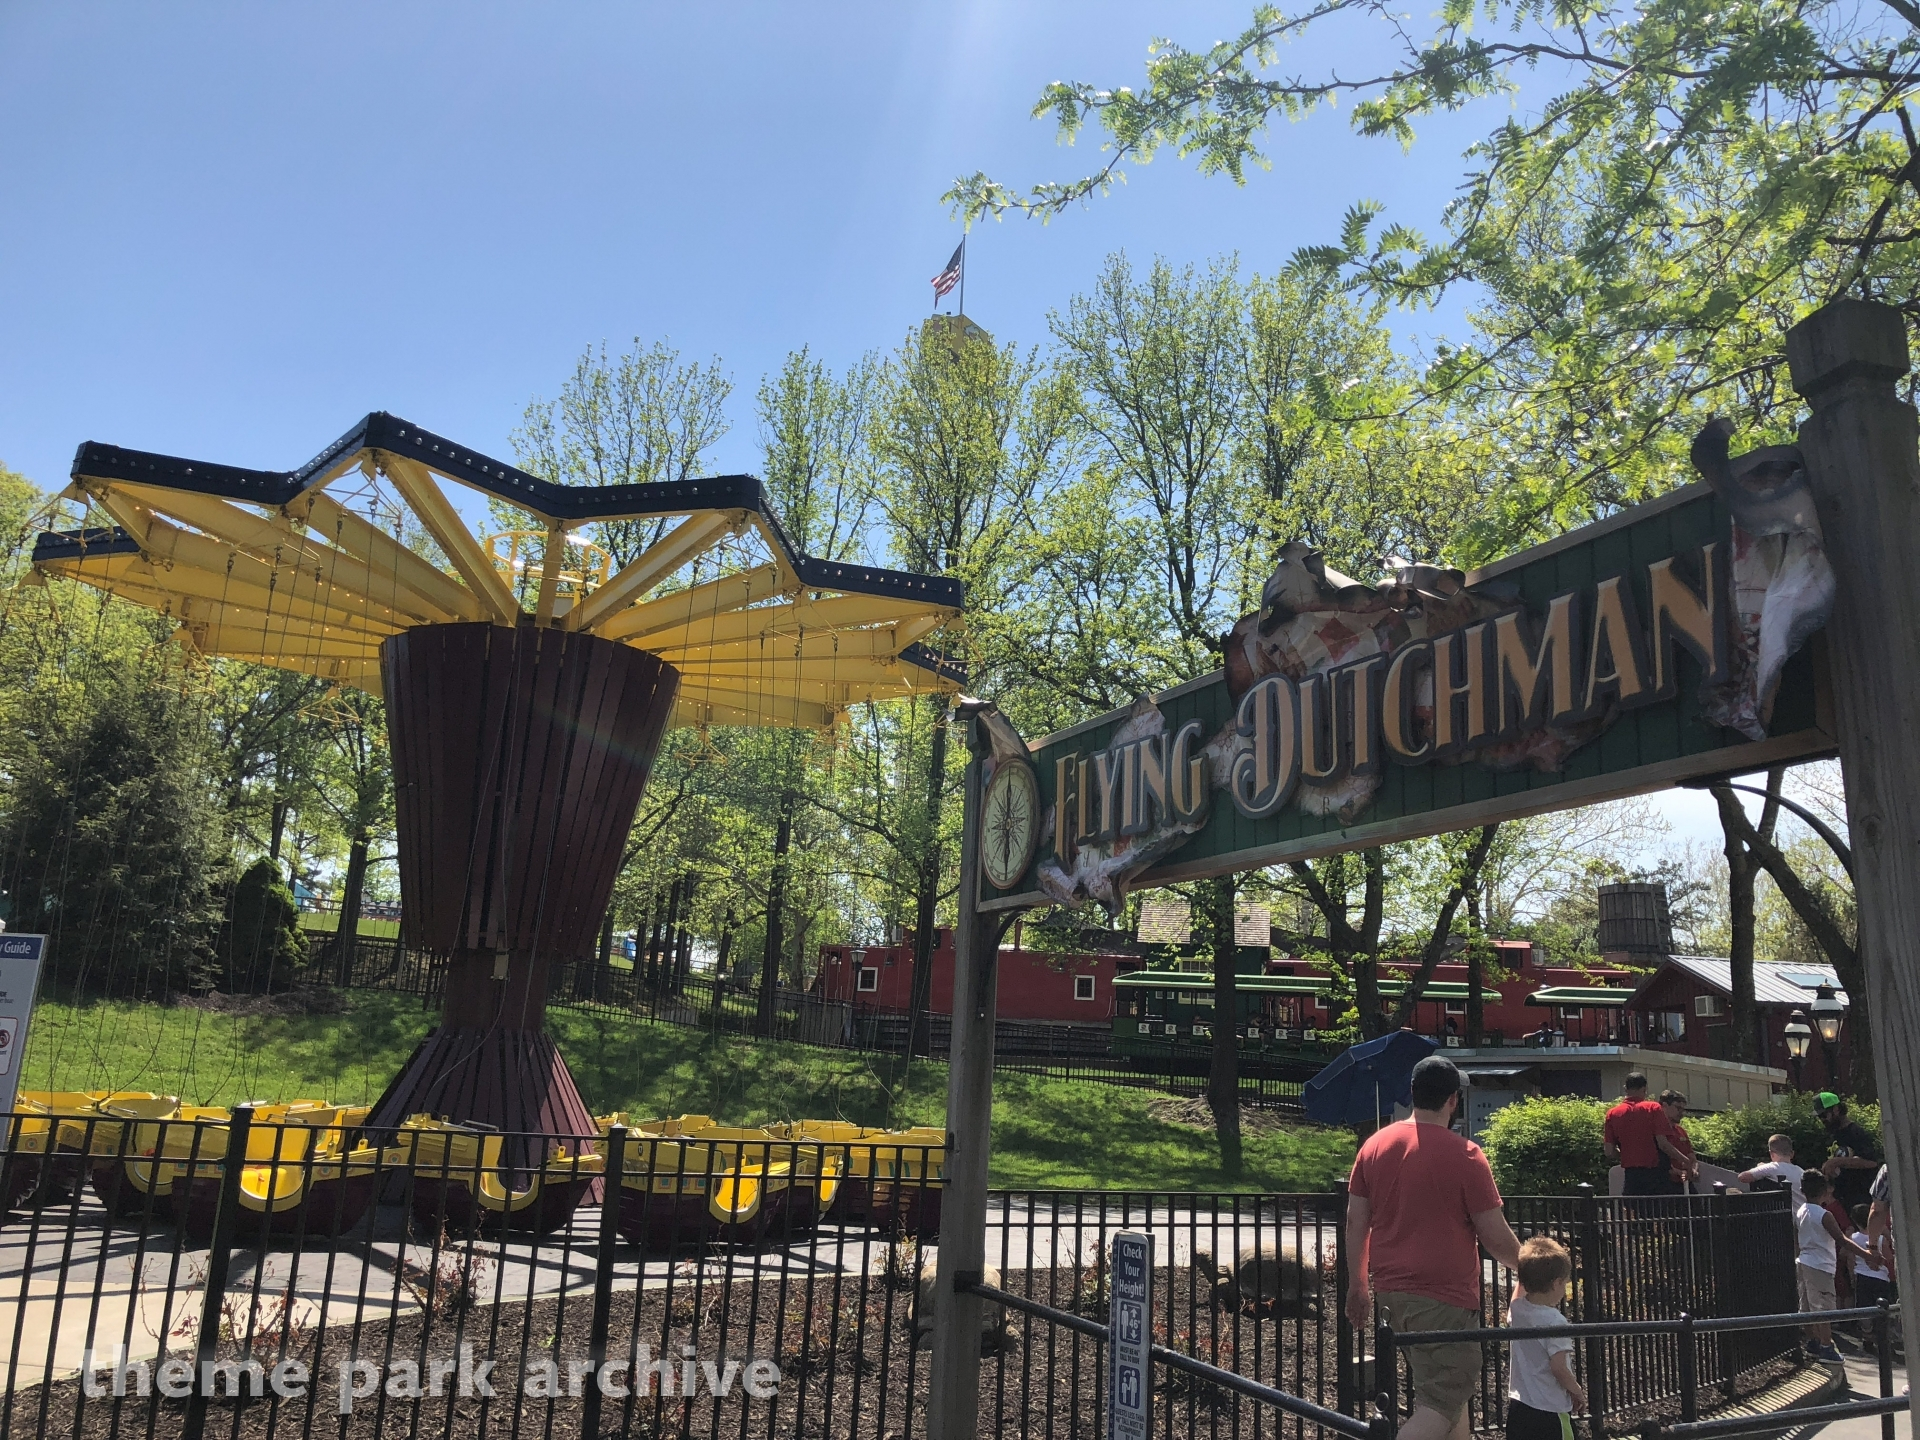 Flying Dutchman at Worlds of Fun